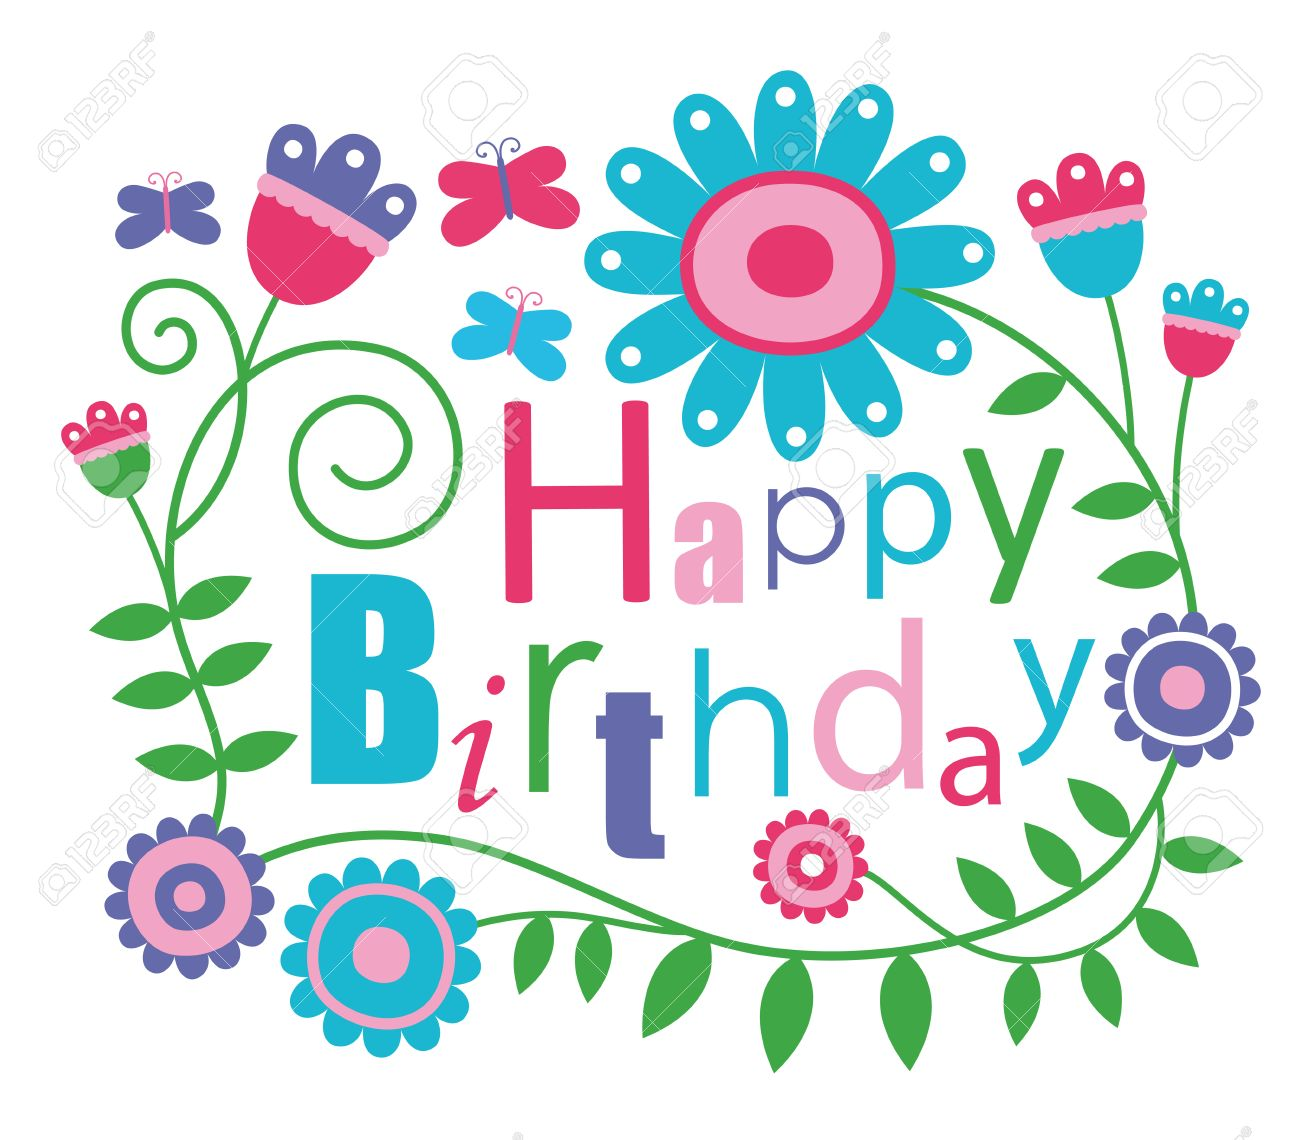 Cute Happy Birthday Card Royalty Free Cliparts Vectors And – Happy Birthday Card Cute